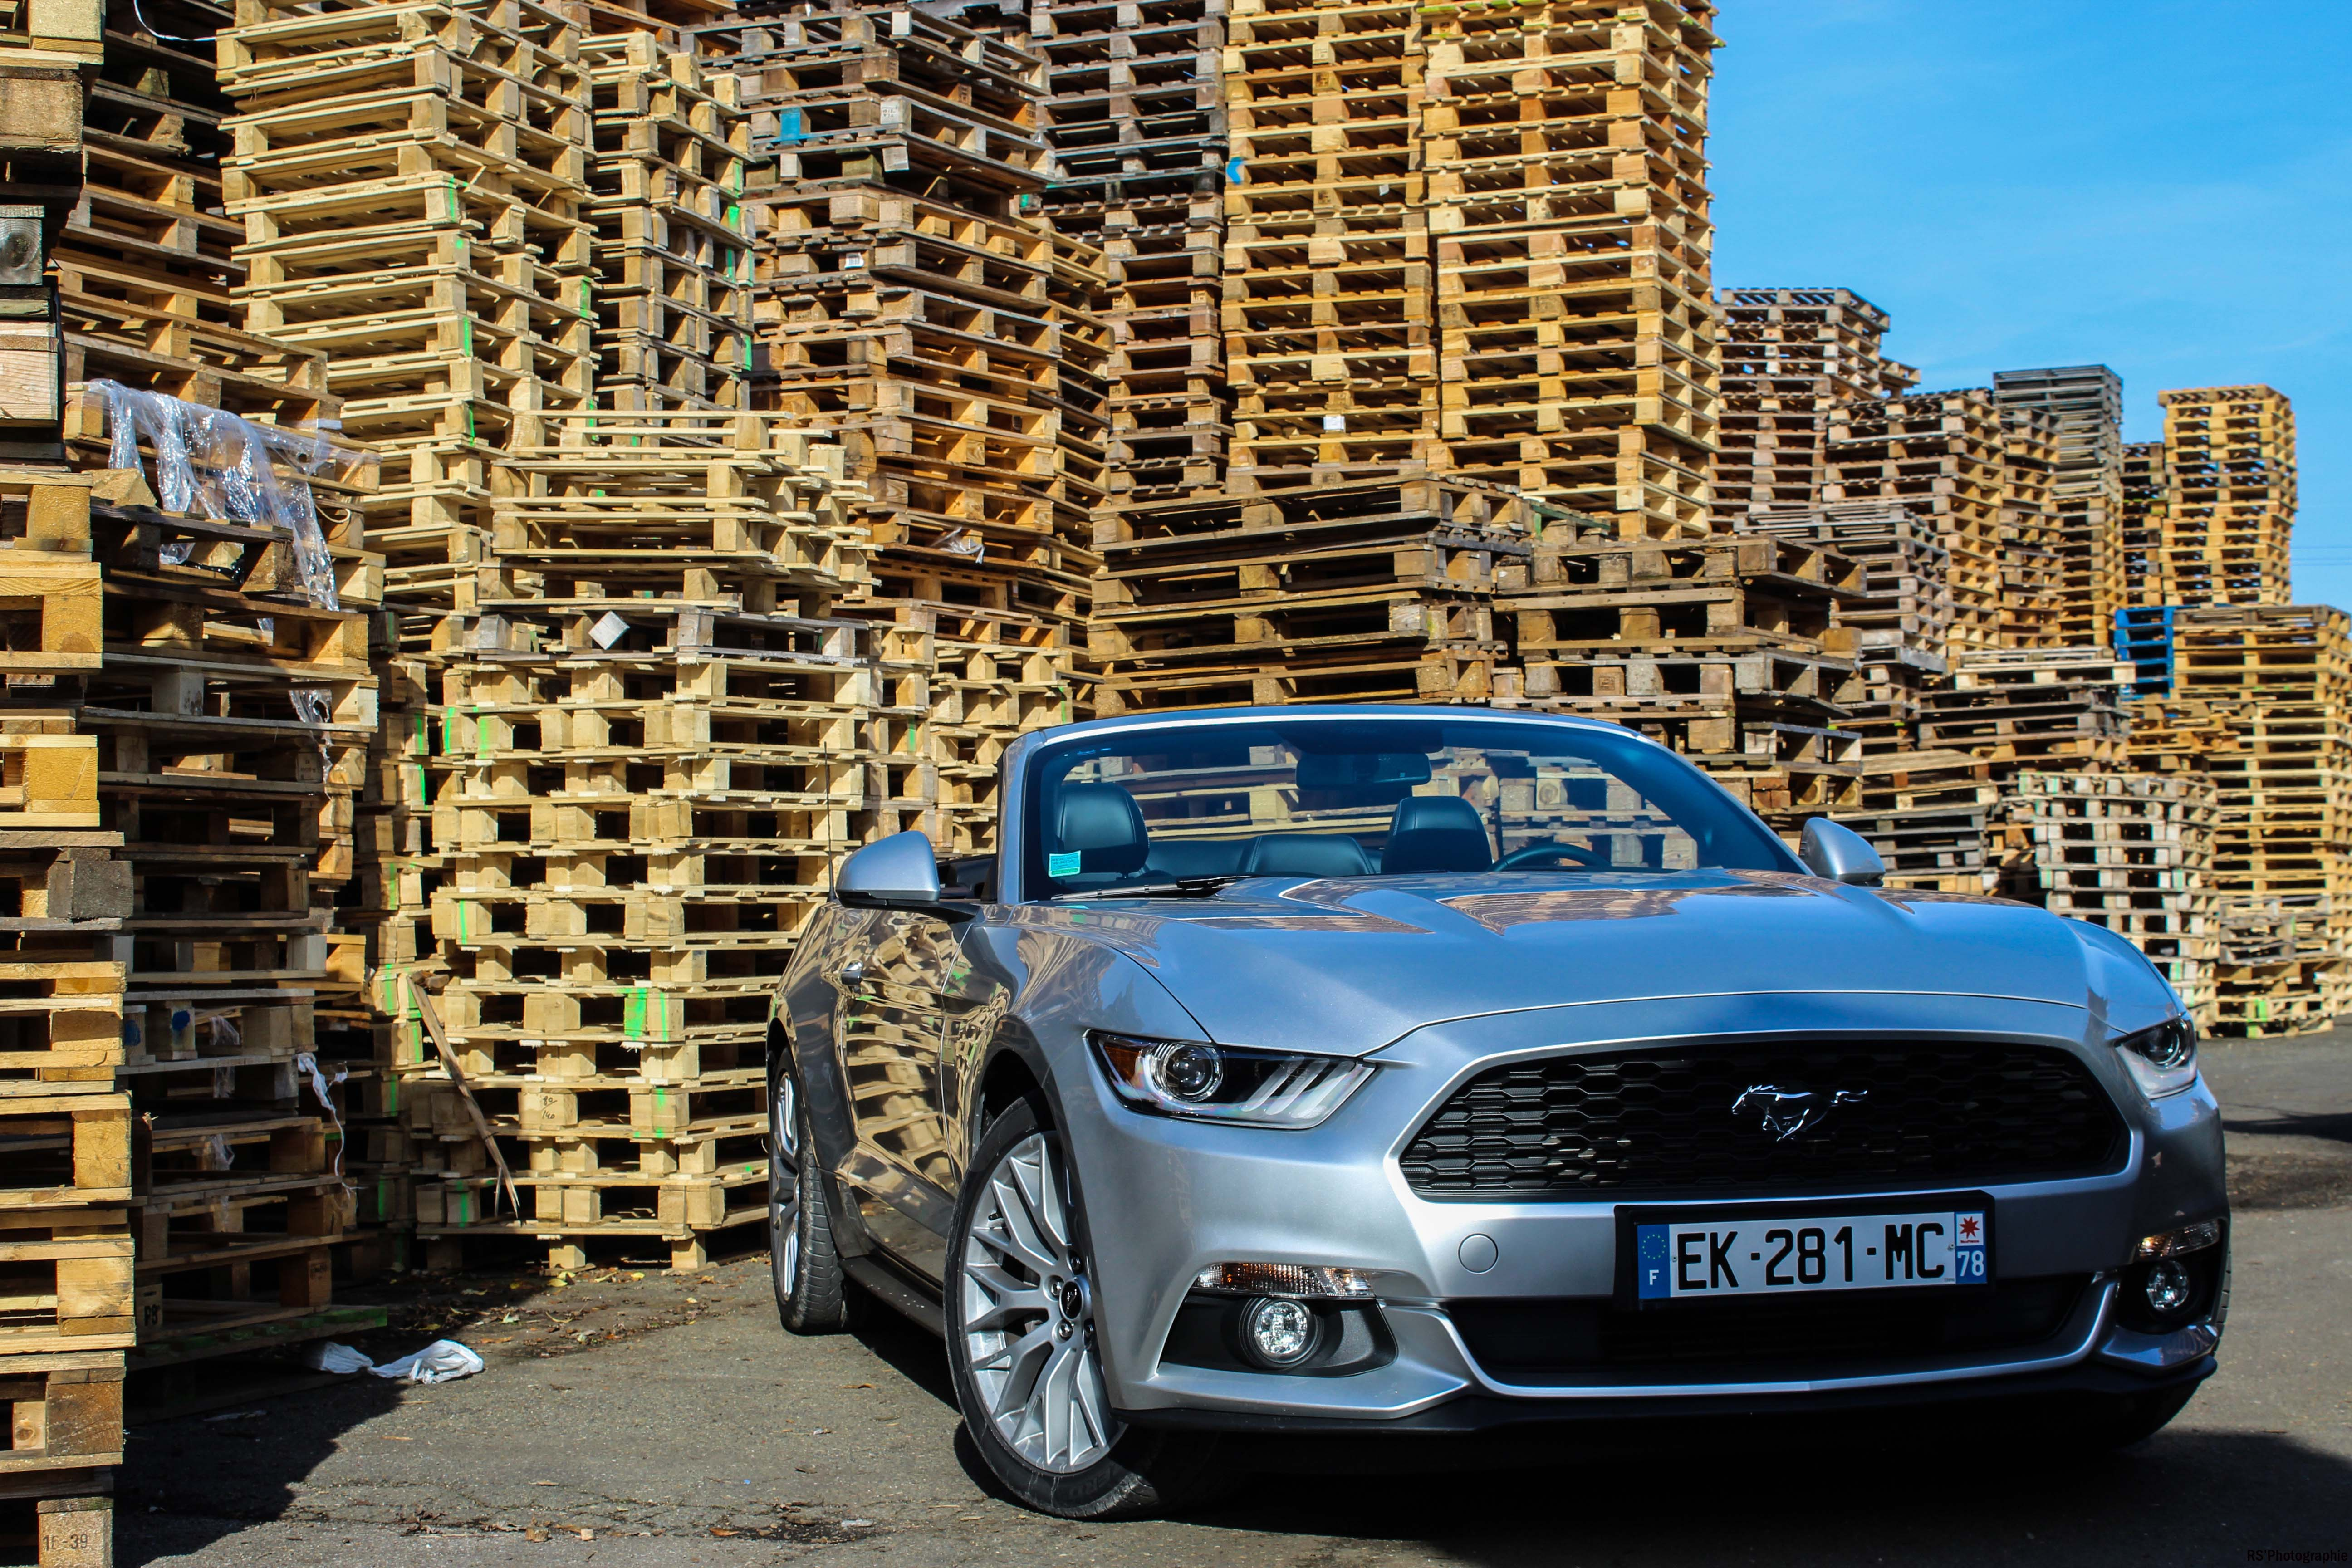 fordmustangeconvertible2-ford-mustang-convertible-ecoboost-avant-front-Arnaud Demasier-RSPhotographie